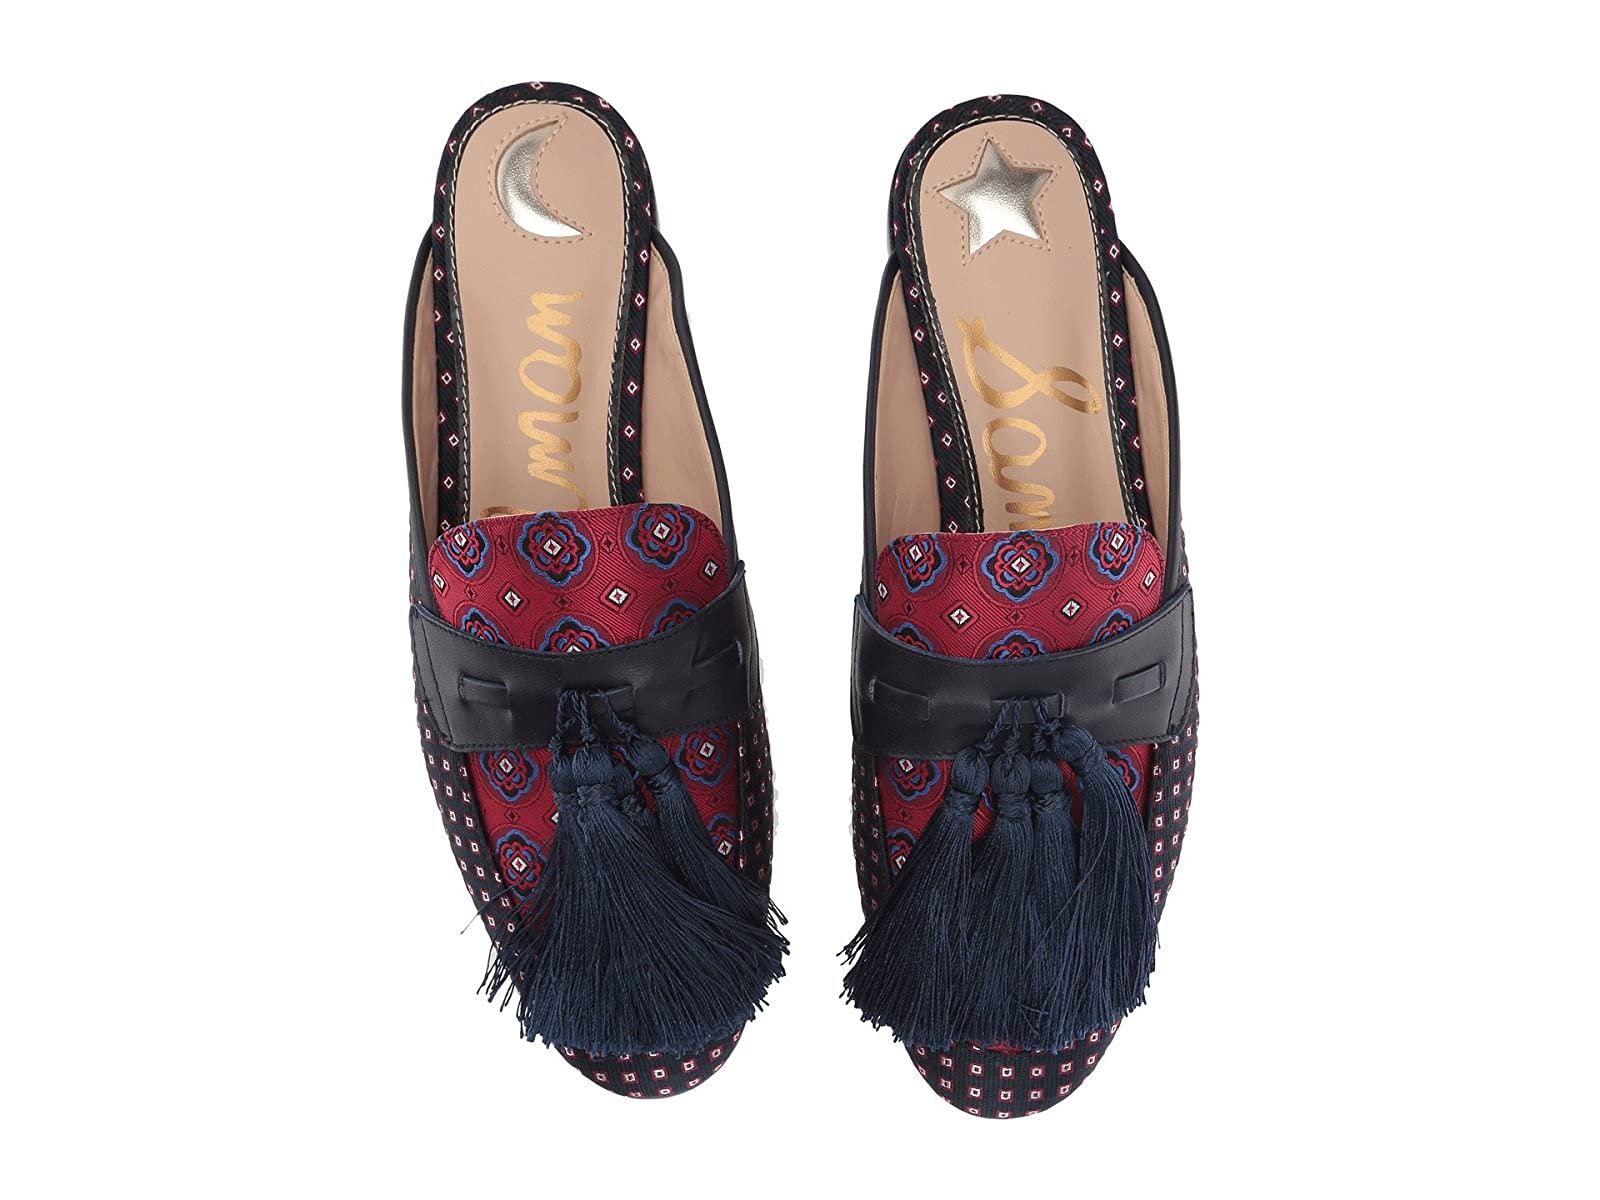 Sam Edelman ParsimonCheap and distinctive eye-catching shoes